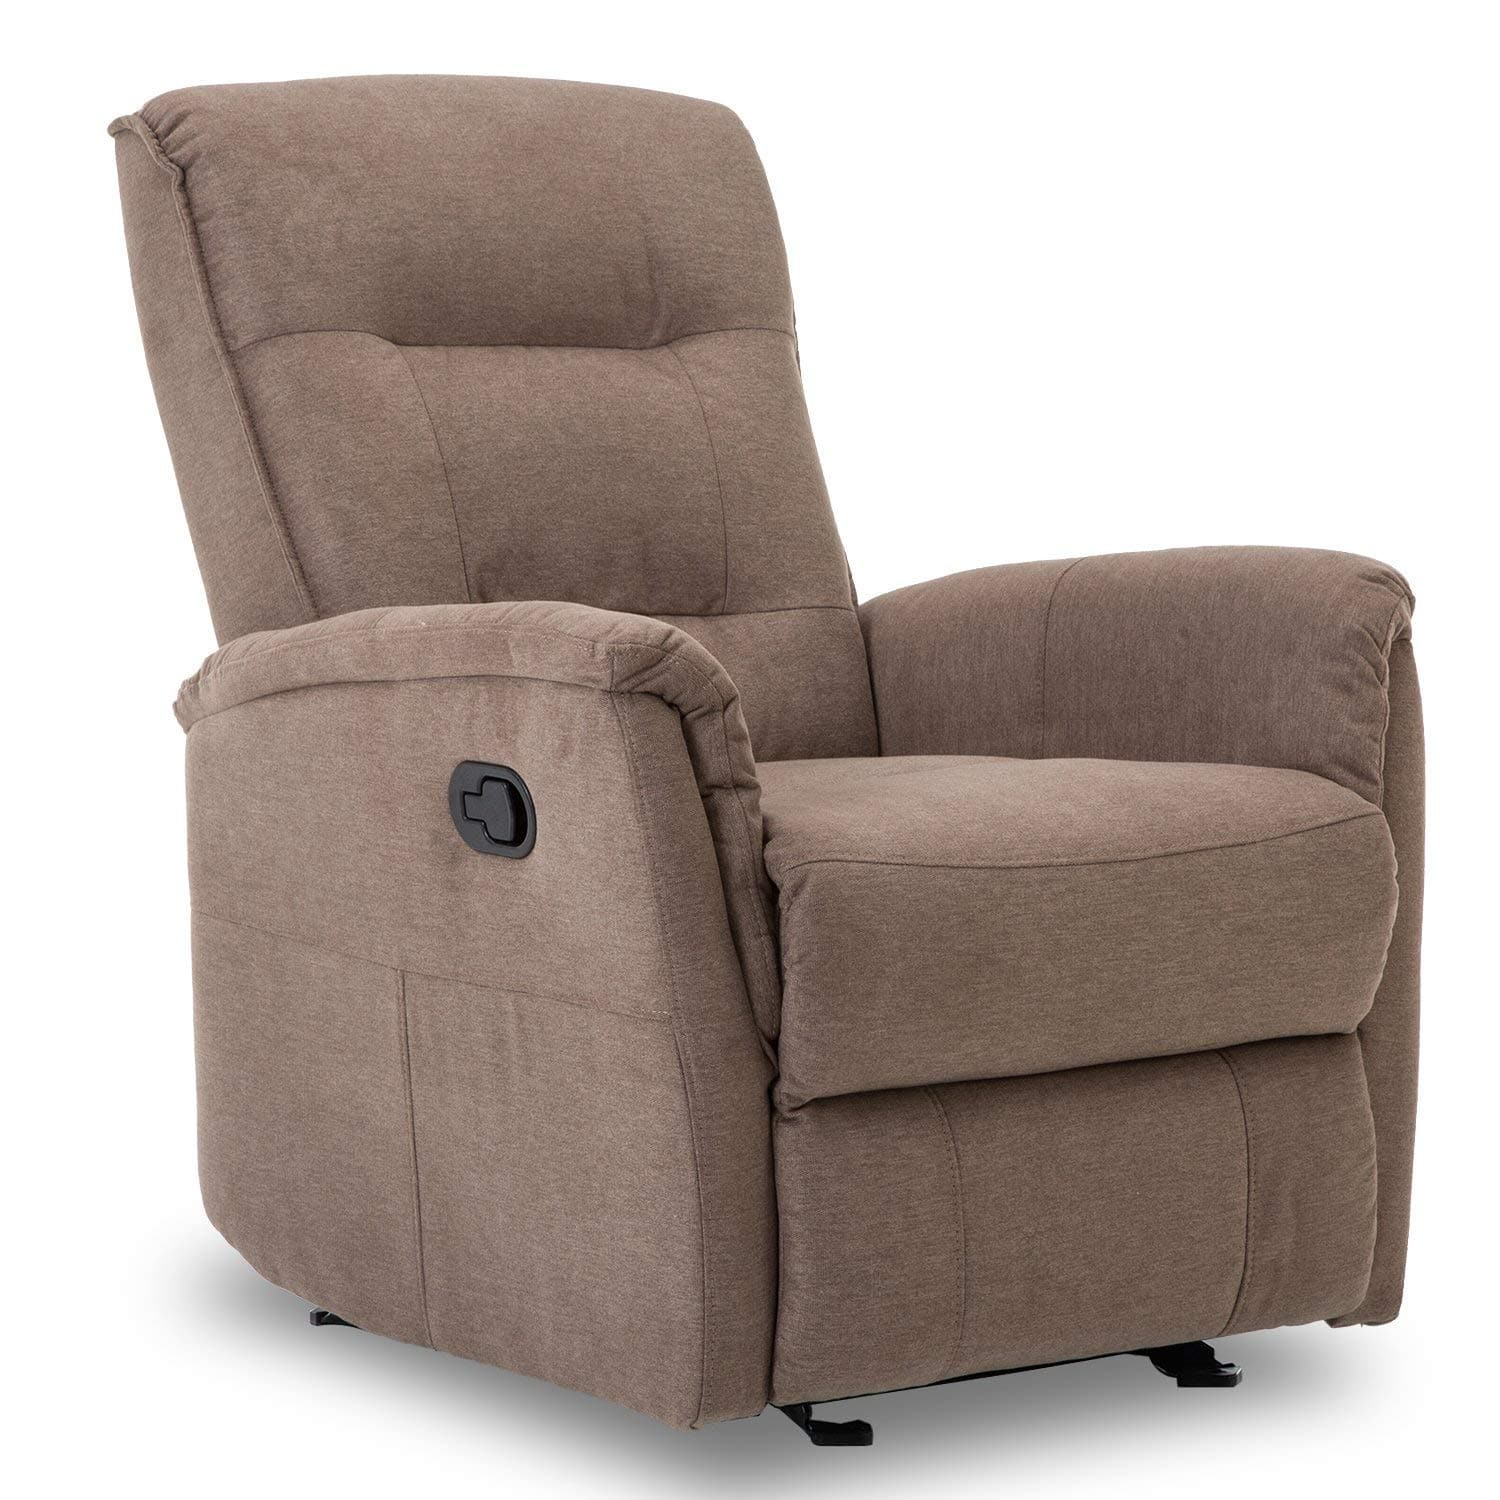 Peachy Bonzy Glider Recliner Chair With Super Comfy Gliding Track Ibusinesslaw Wood Chair Design Ideas Ibusinesslaworg